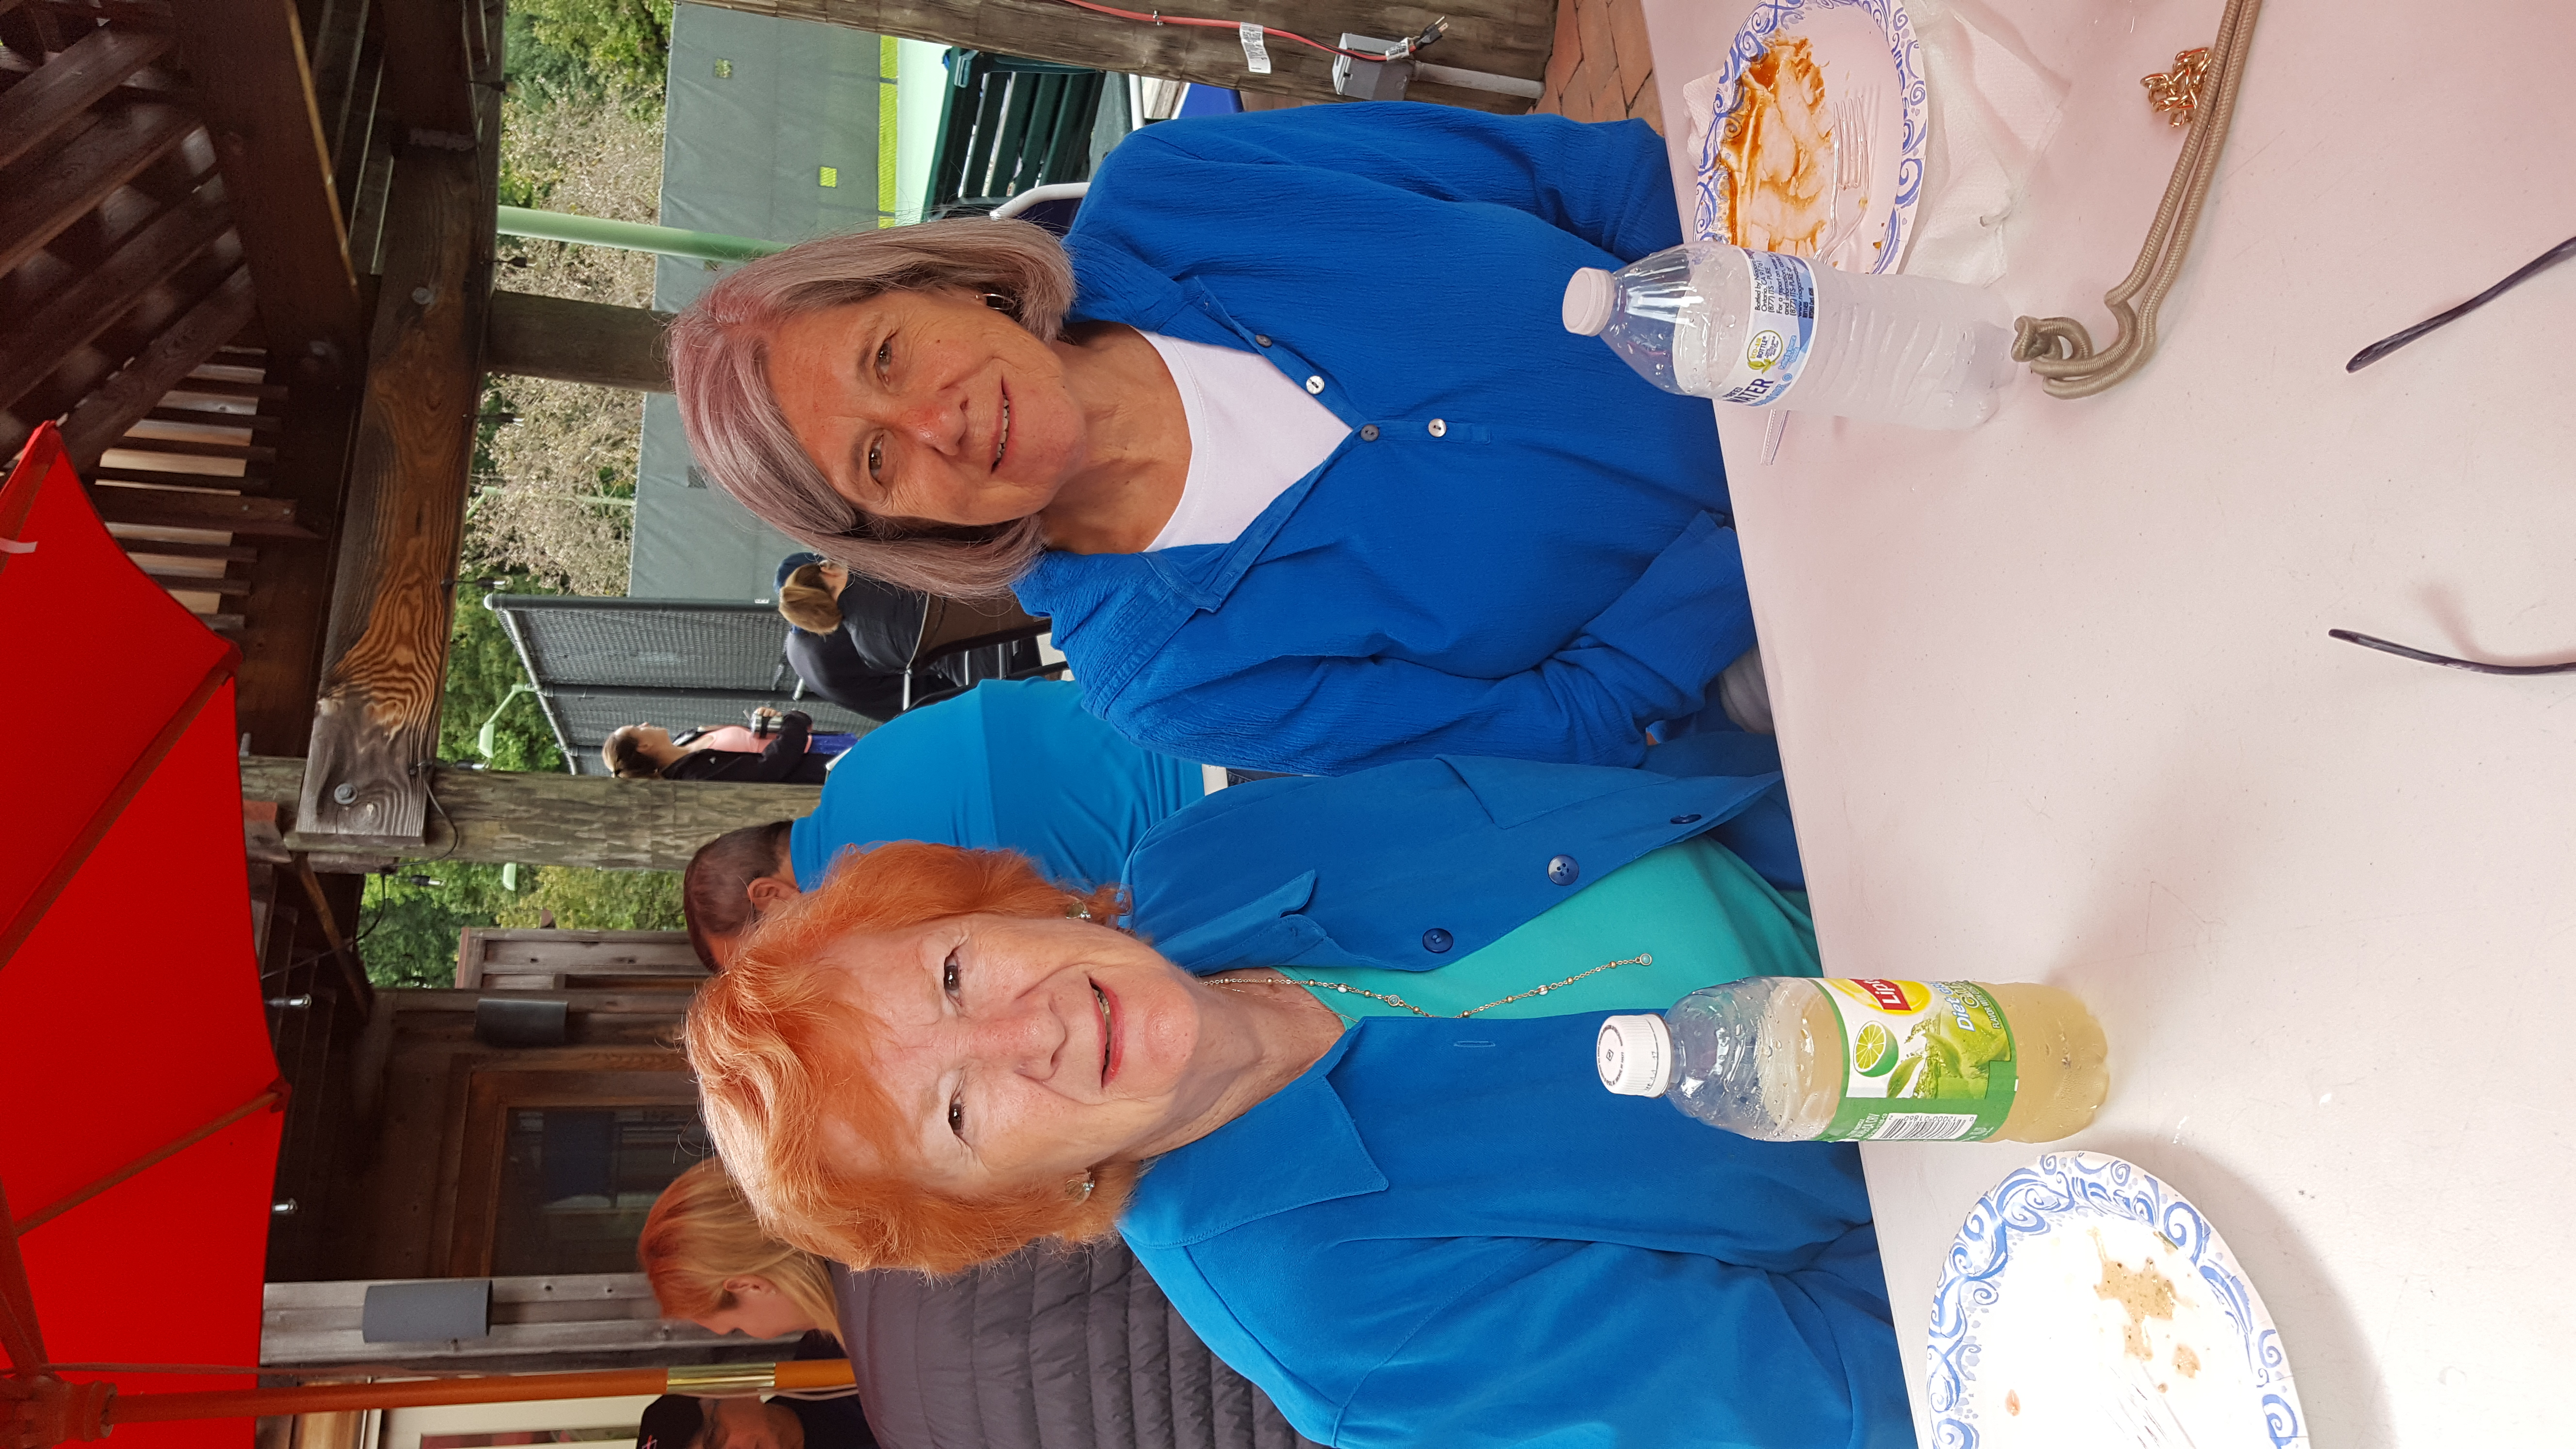 Ladies in Blue at the Brunch